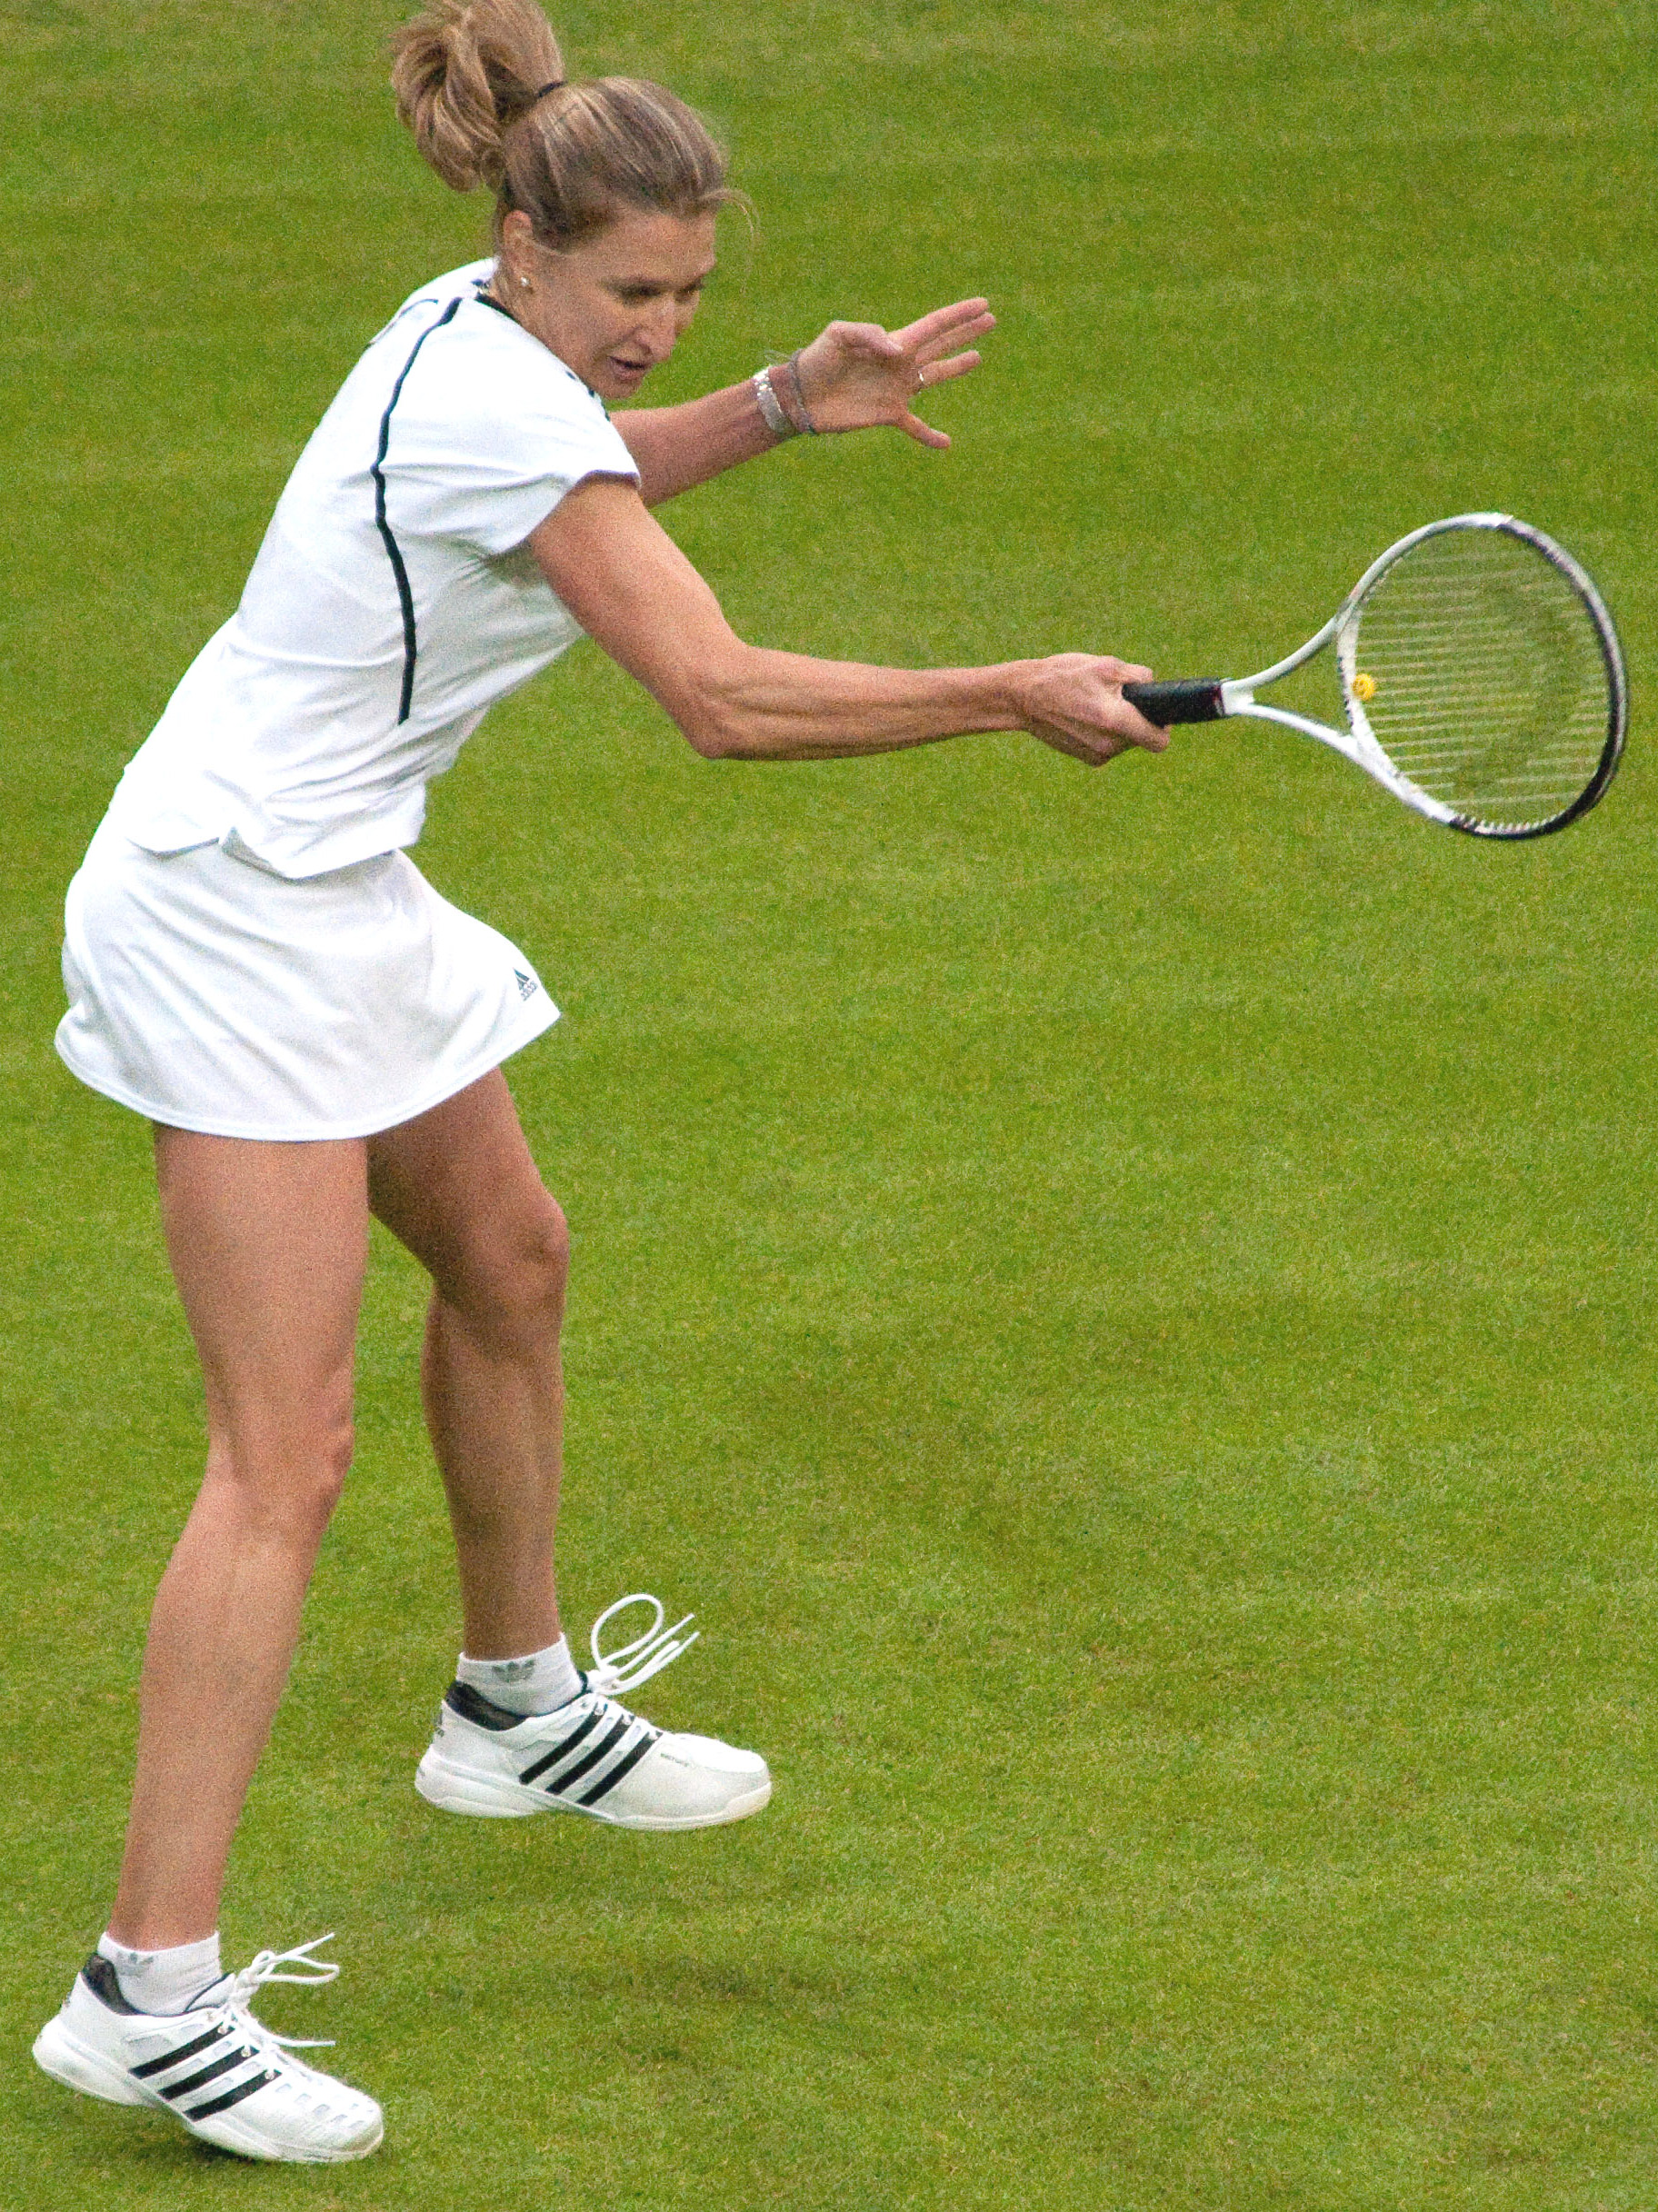 Images Steffi Graf Top file:steffi graf (wimbledon 2009) 13 (cropped) - wikimedia commons